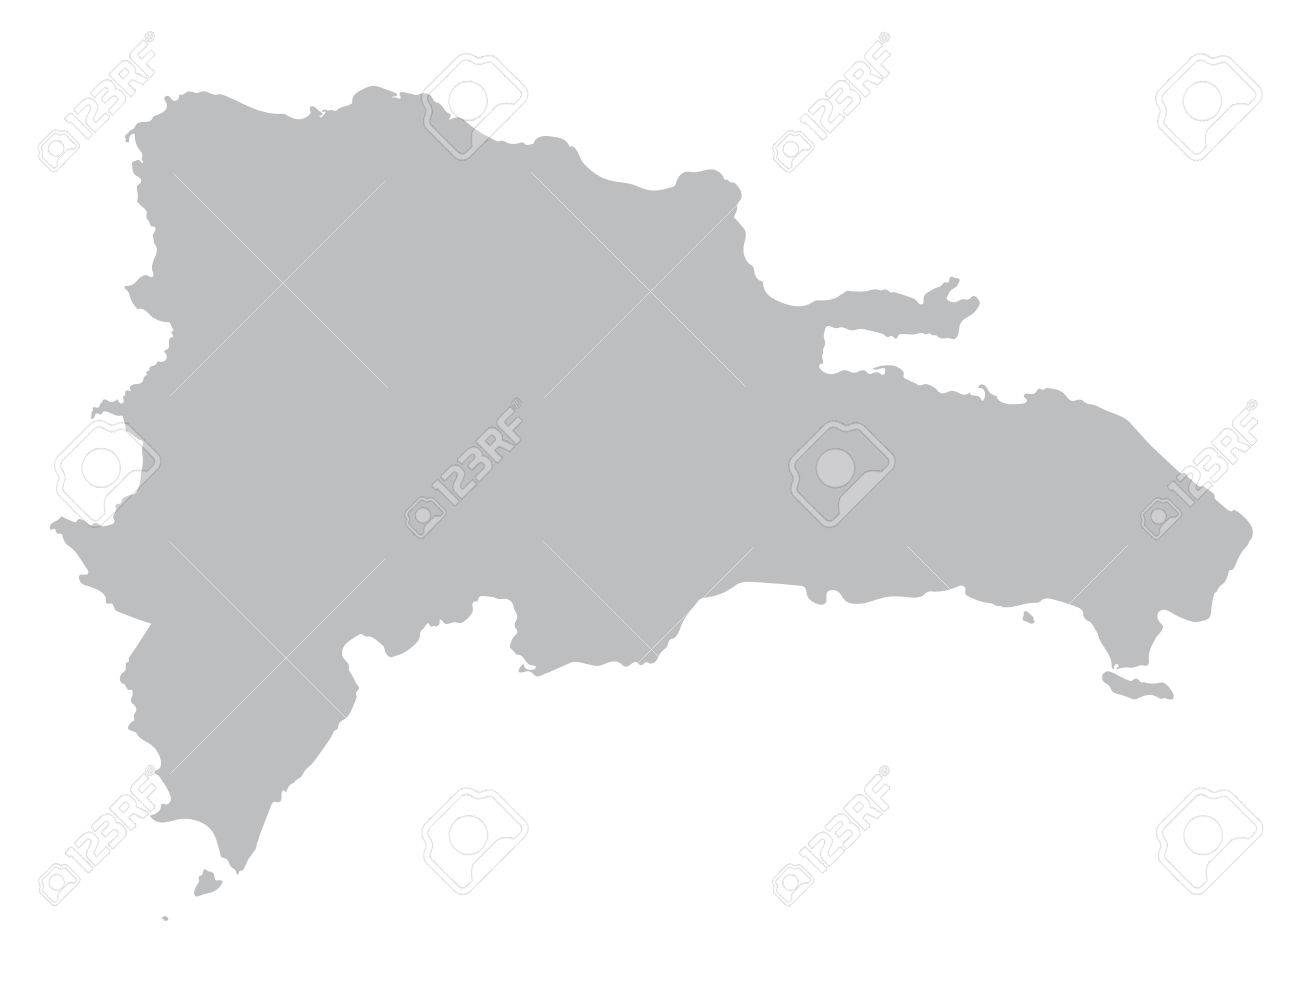 Gray Map Of Dominican Republic Royalty Free Cliparts Vectors And - Dominican republic map vector